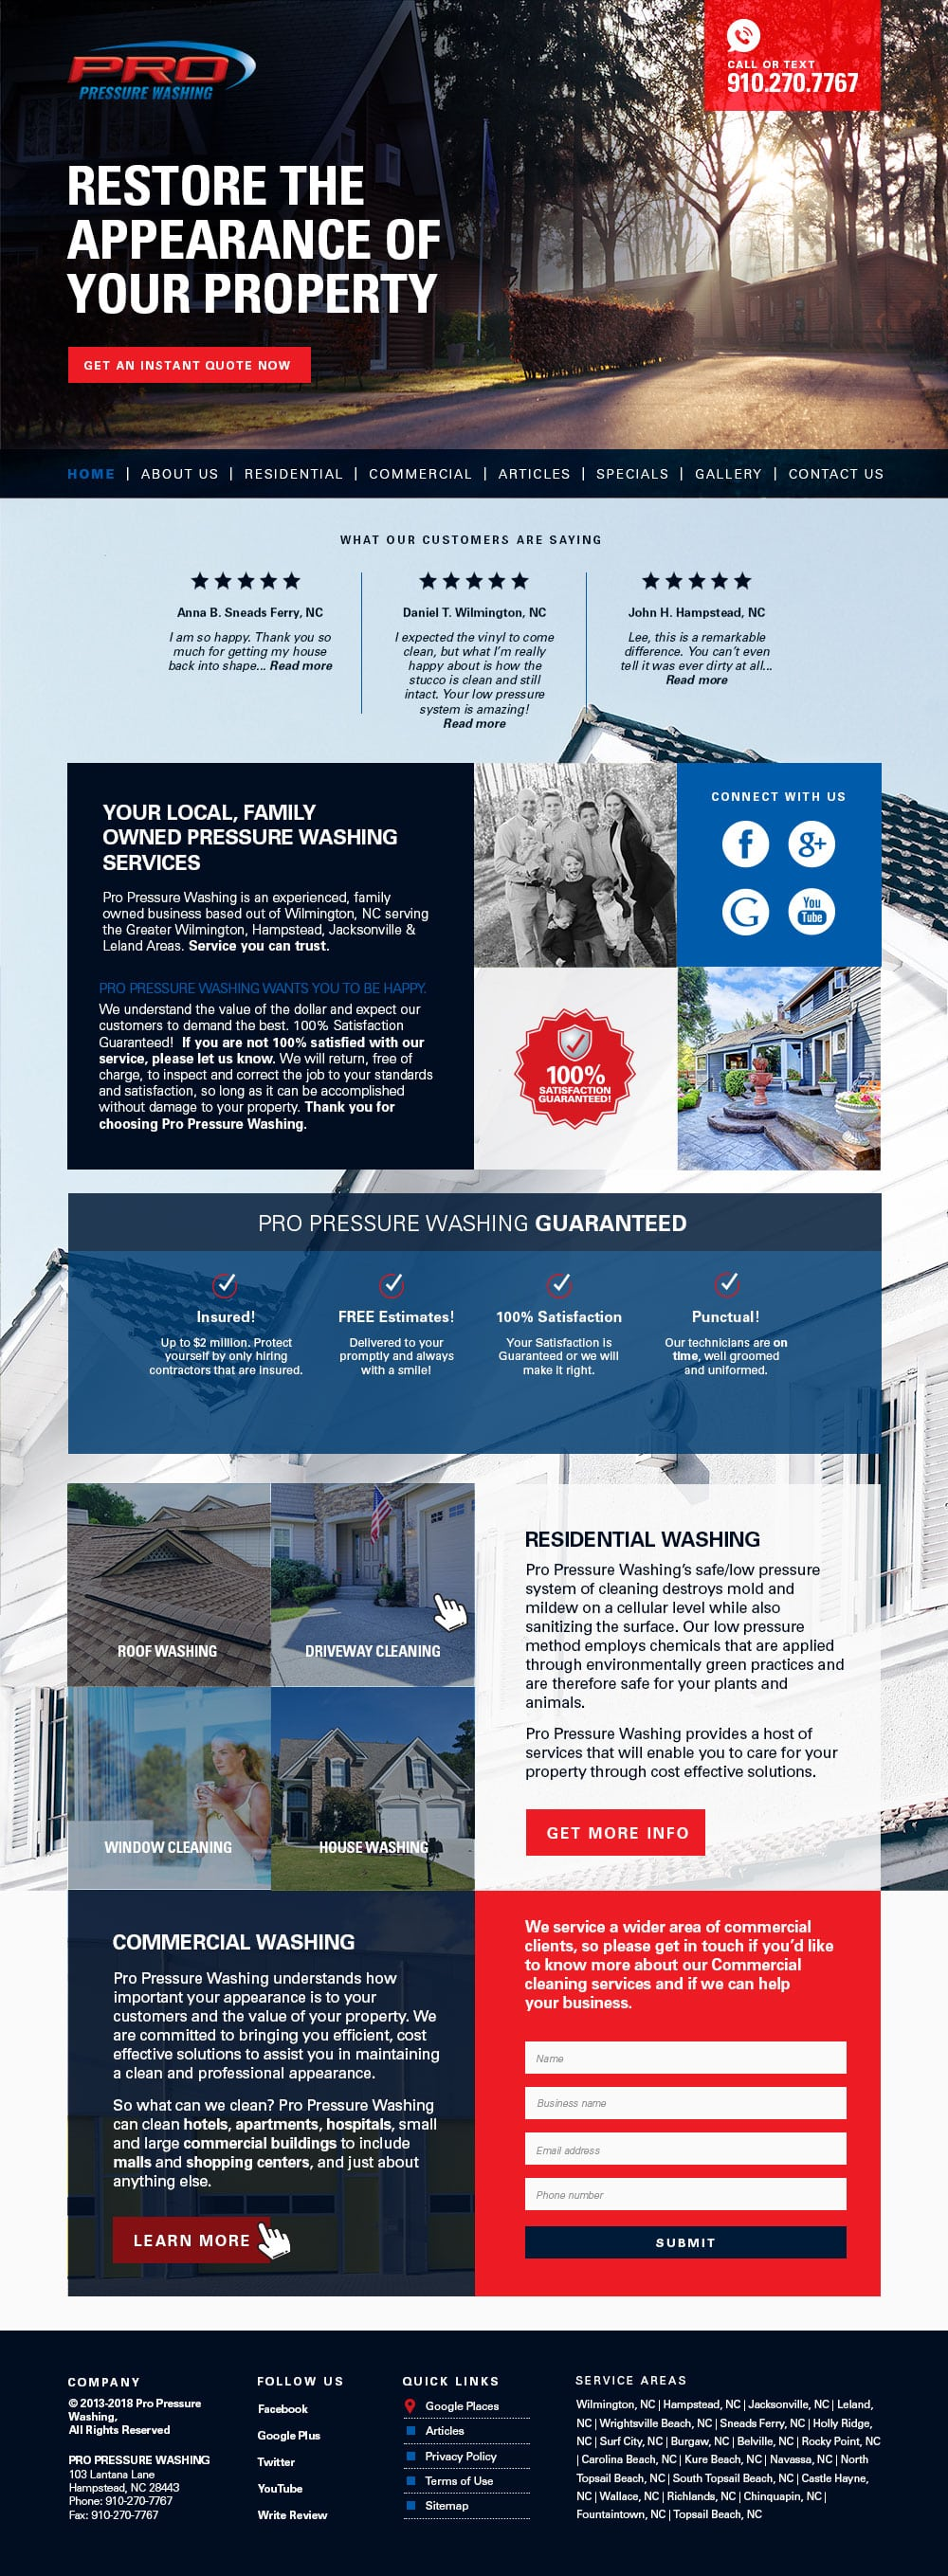 Melbourne Fl Website Design